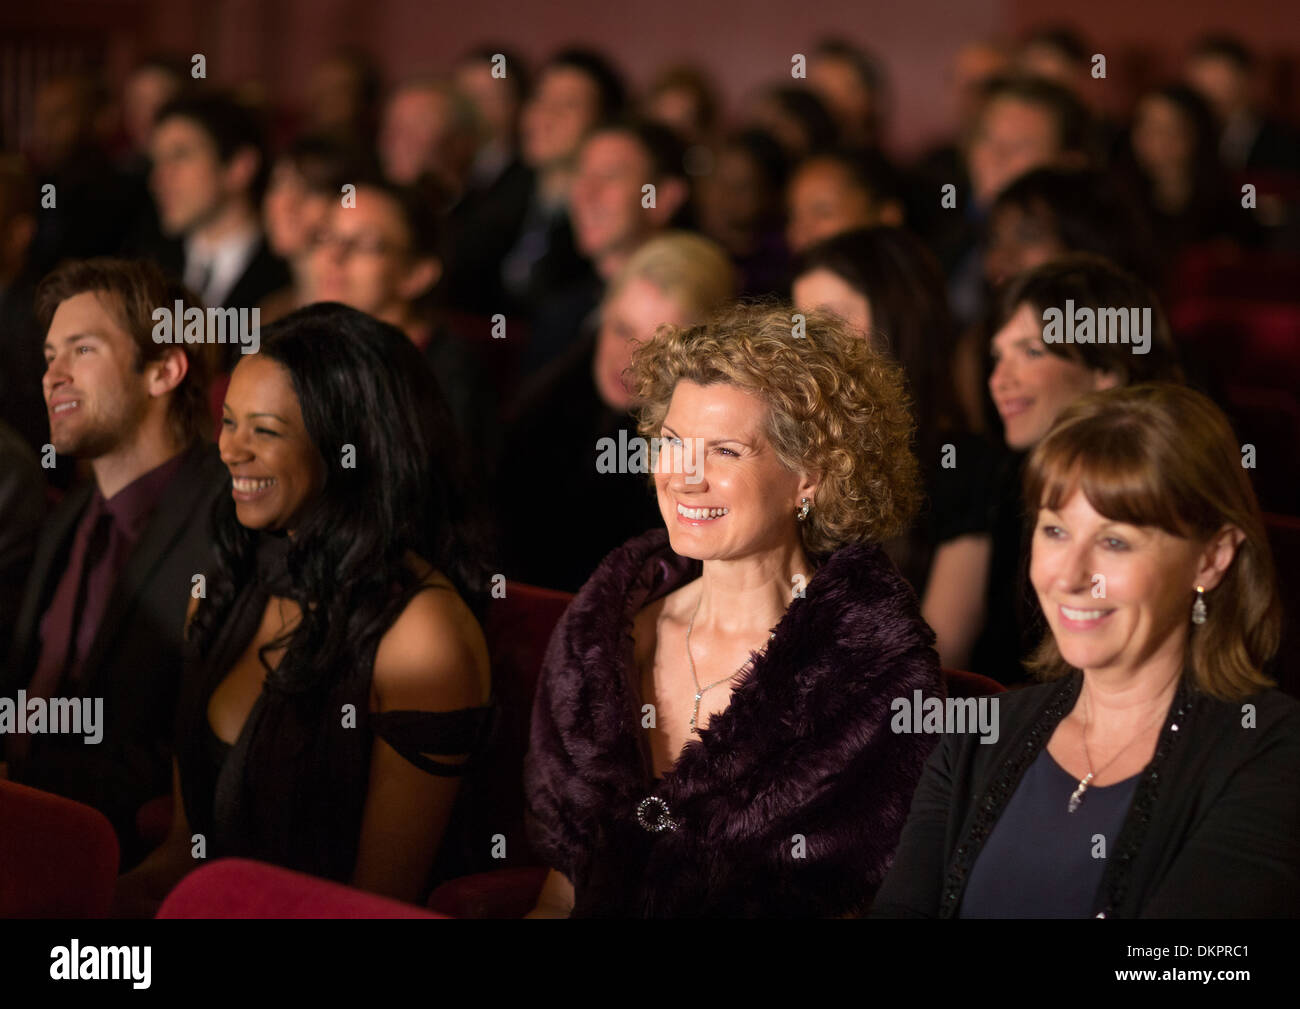 Smiling theater audience - Stock Image